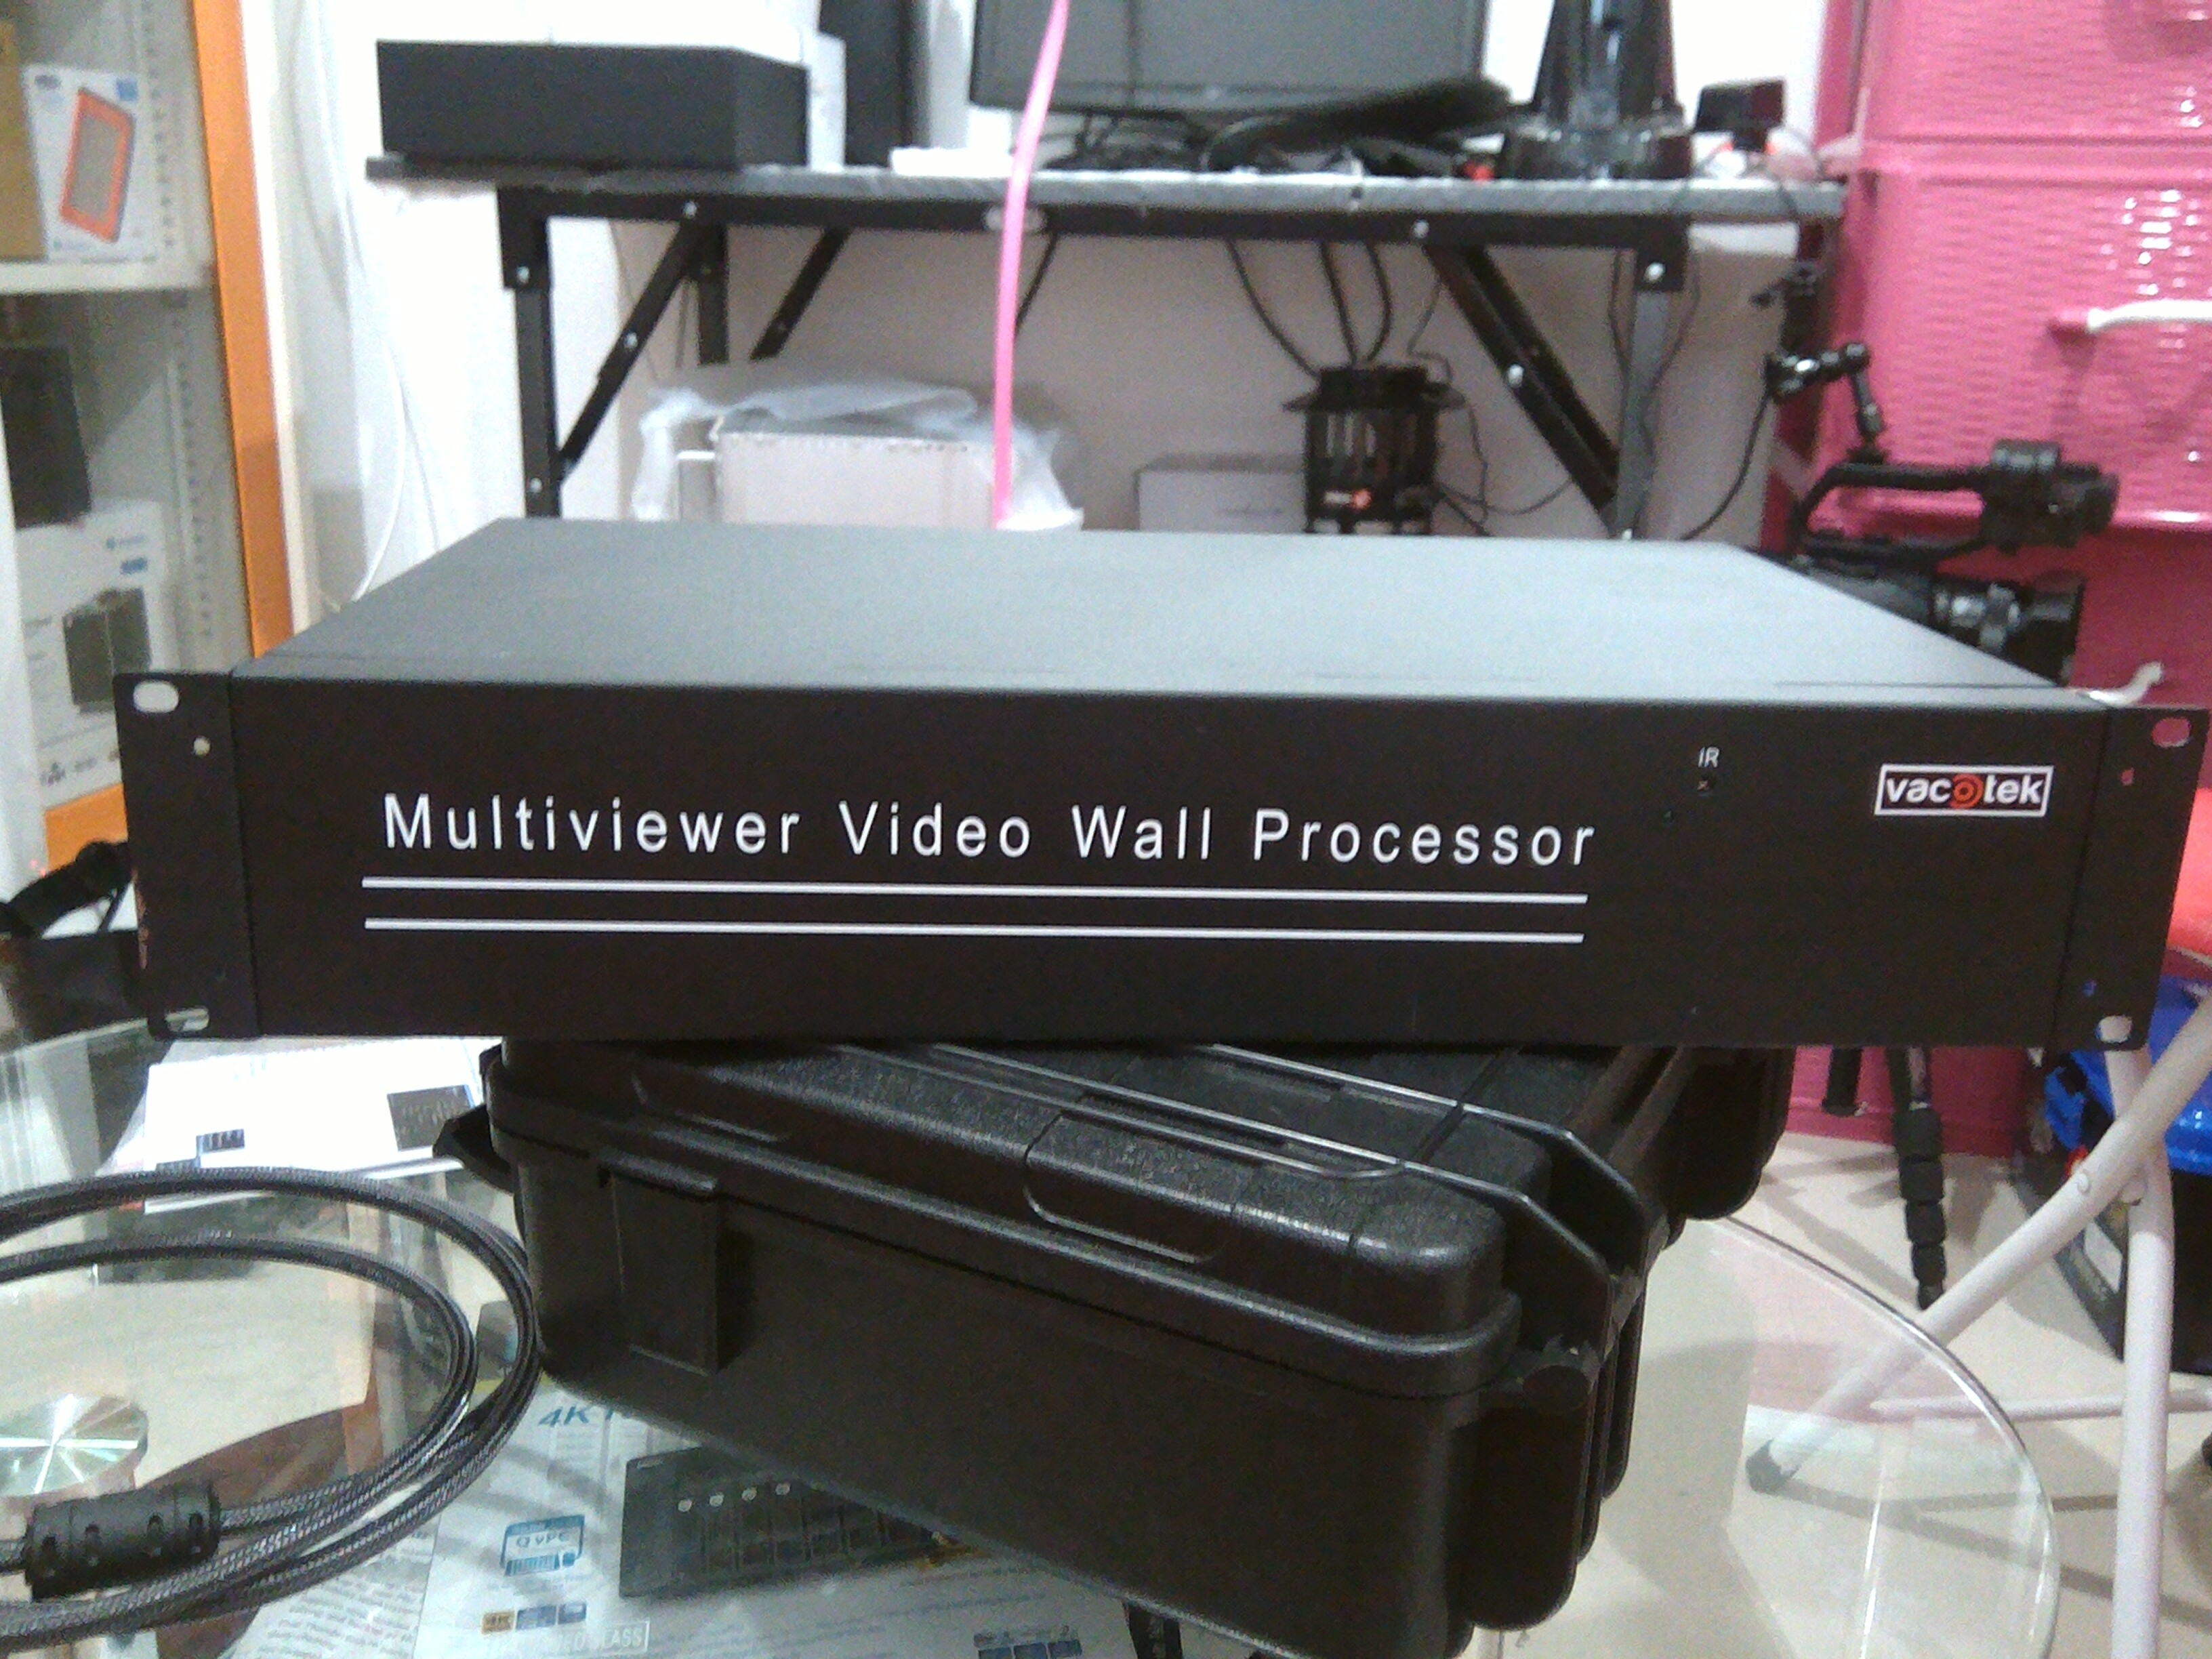 4x4 Video Wall Controller System - coremedia-tv อุปกรณ์สตรีม